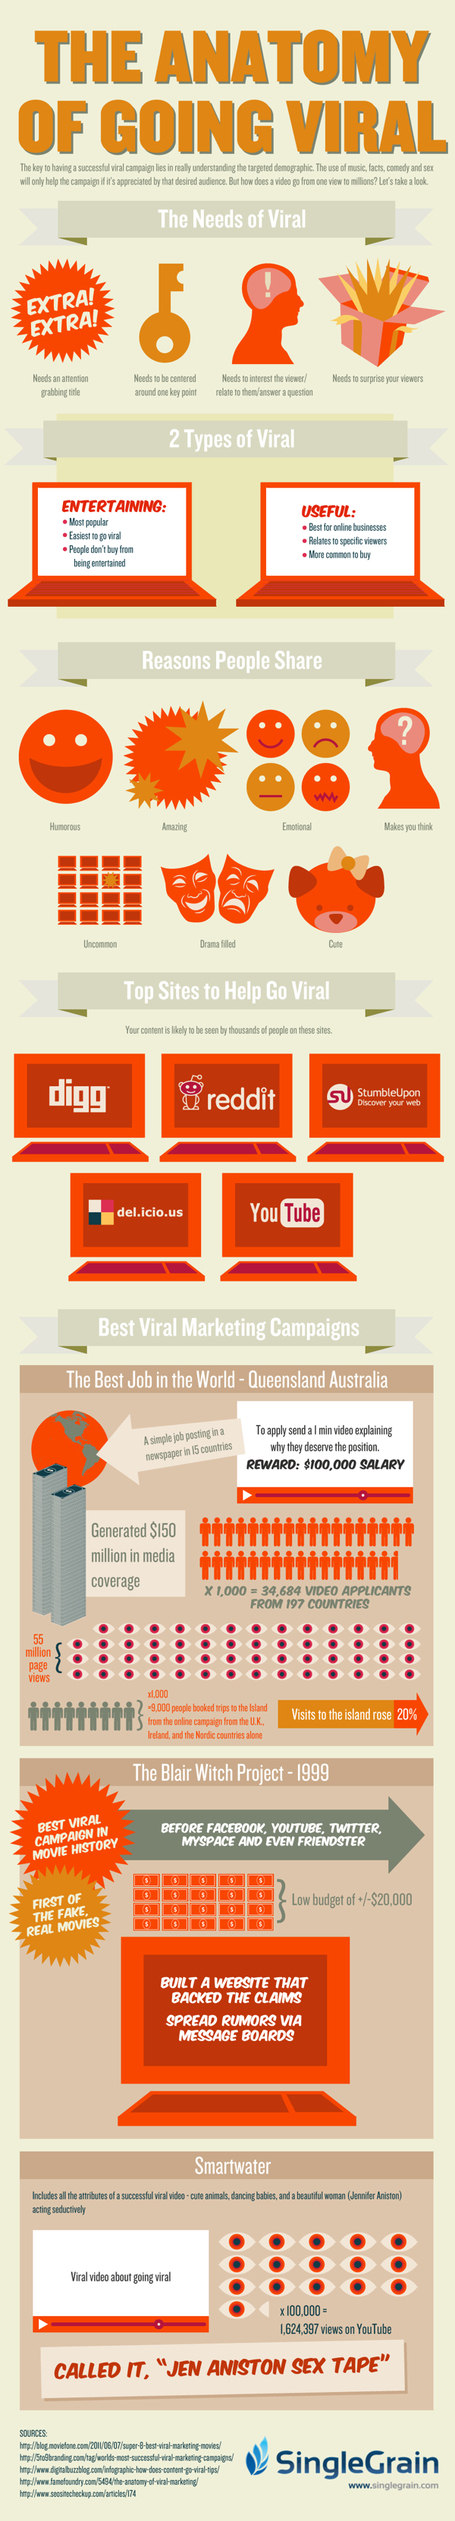 The Anatomy of Going Viral [Infographic] | Social Media Butterflies | Scoop.it